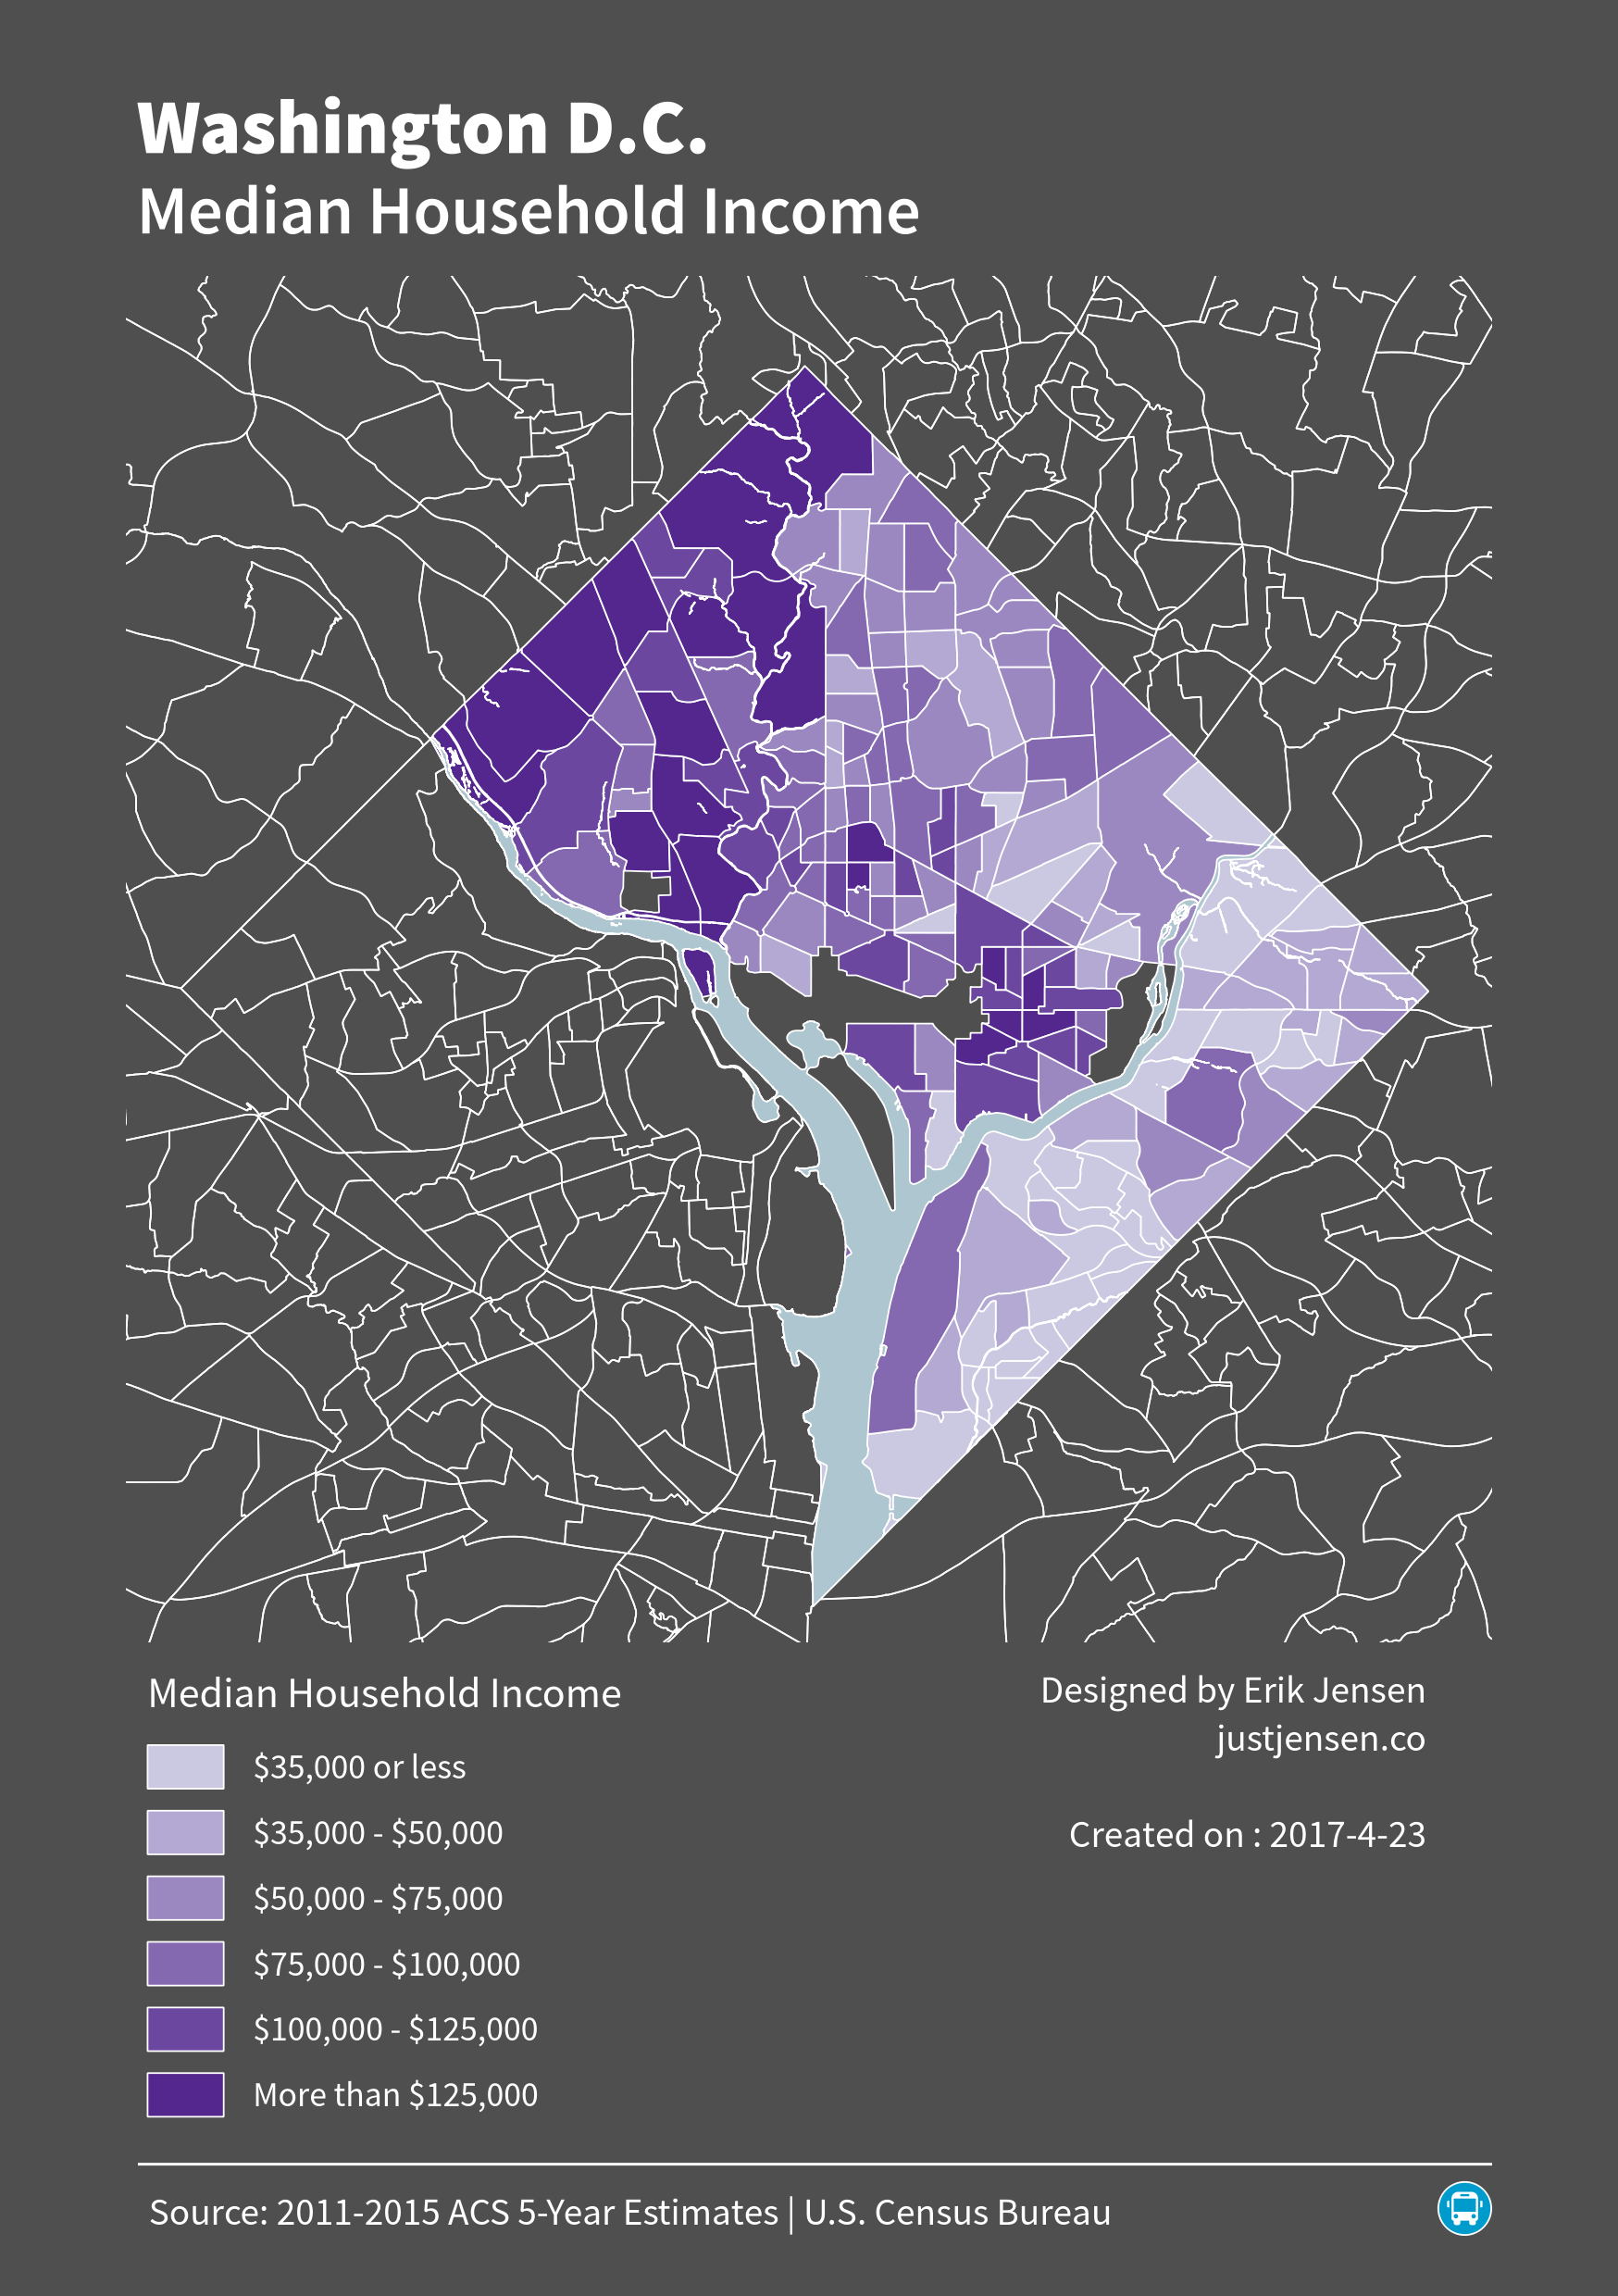 Income Inequality in Washington D.C.